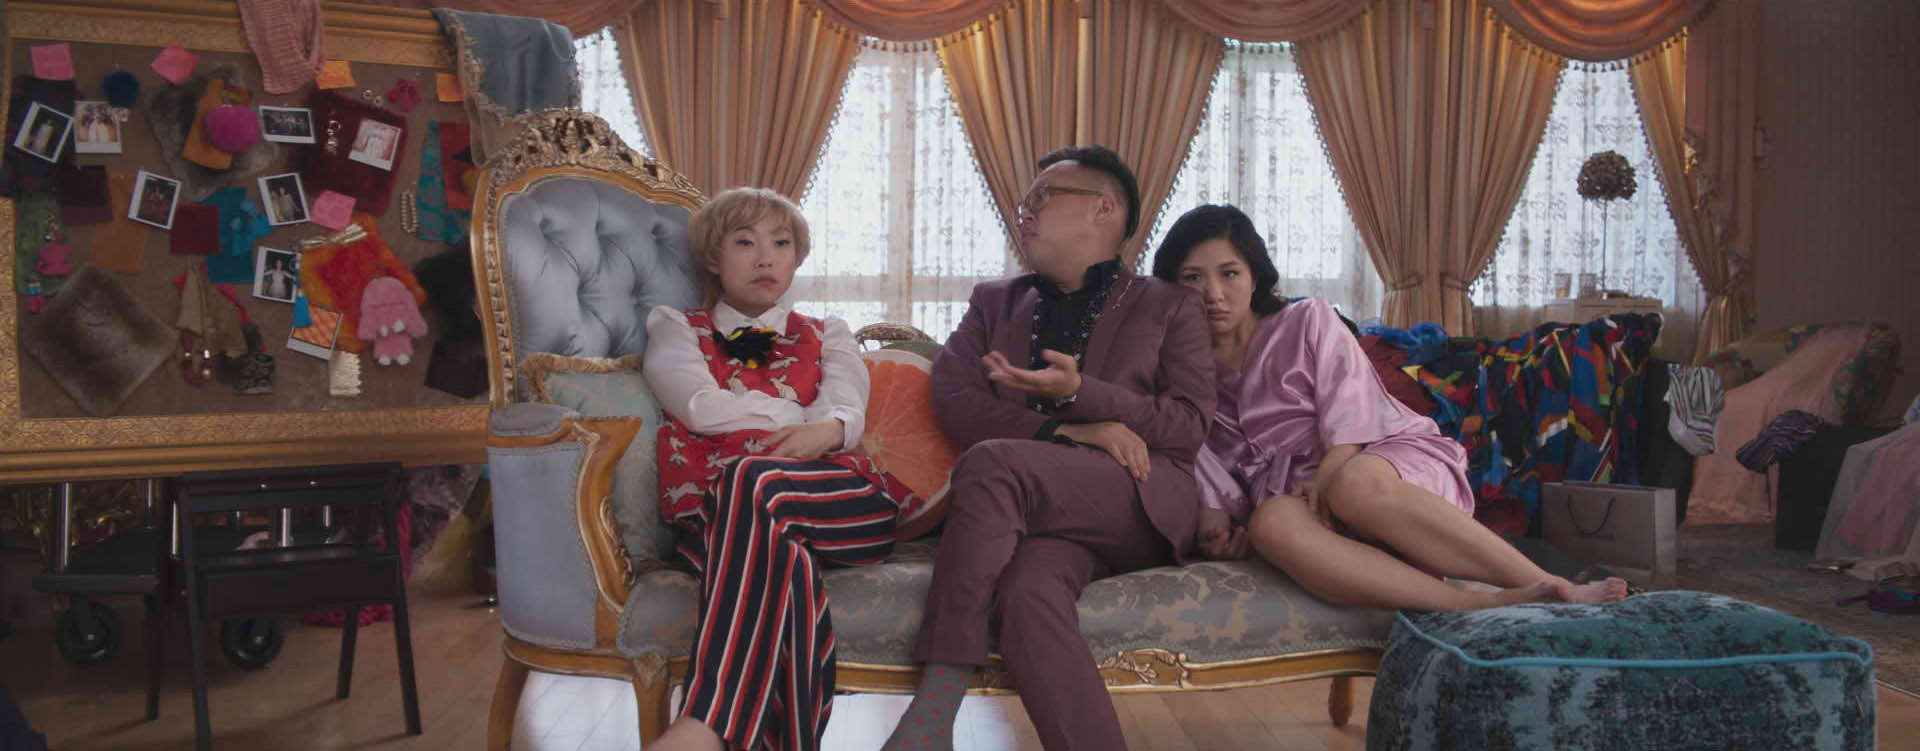 CINDERELLA SCENE. The makeover montage with Awkwafina and Constance was the first scene Nico filmed upon landing in Malaysia. Photo courtesy of Warner Bros/ Ratpac-Dune